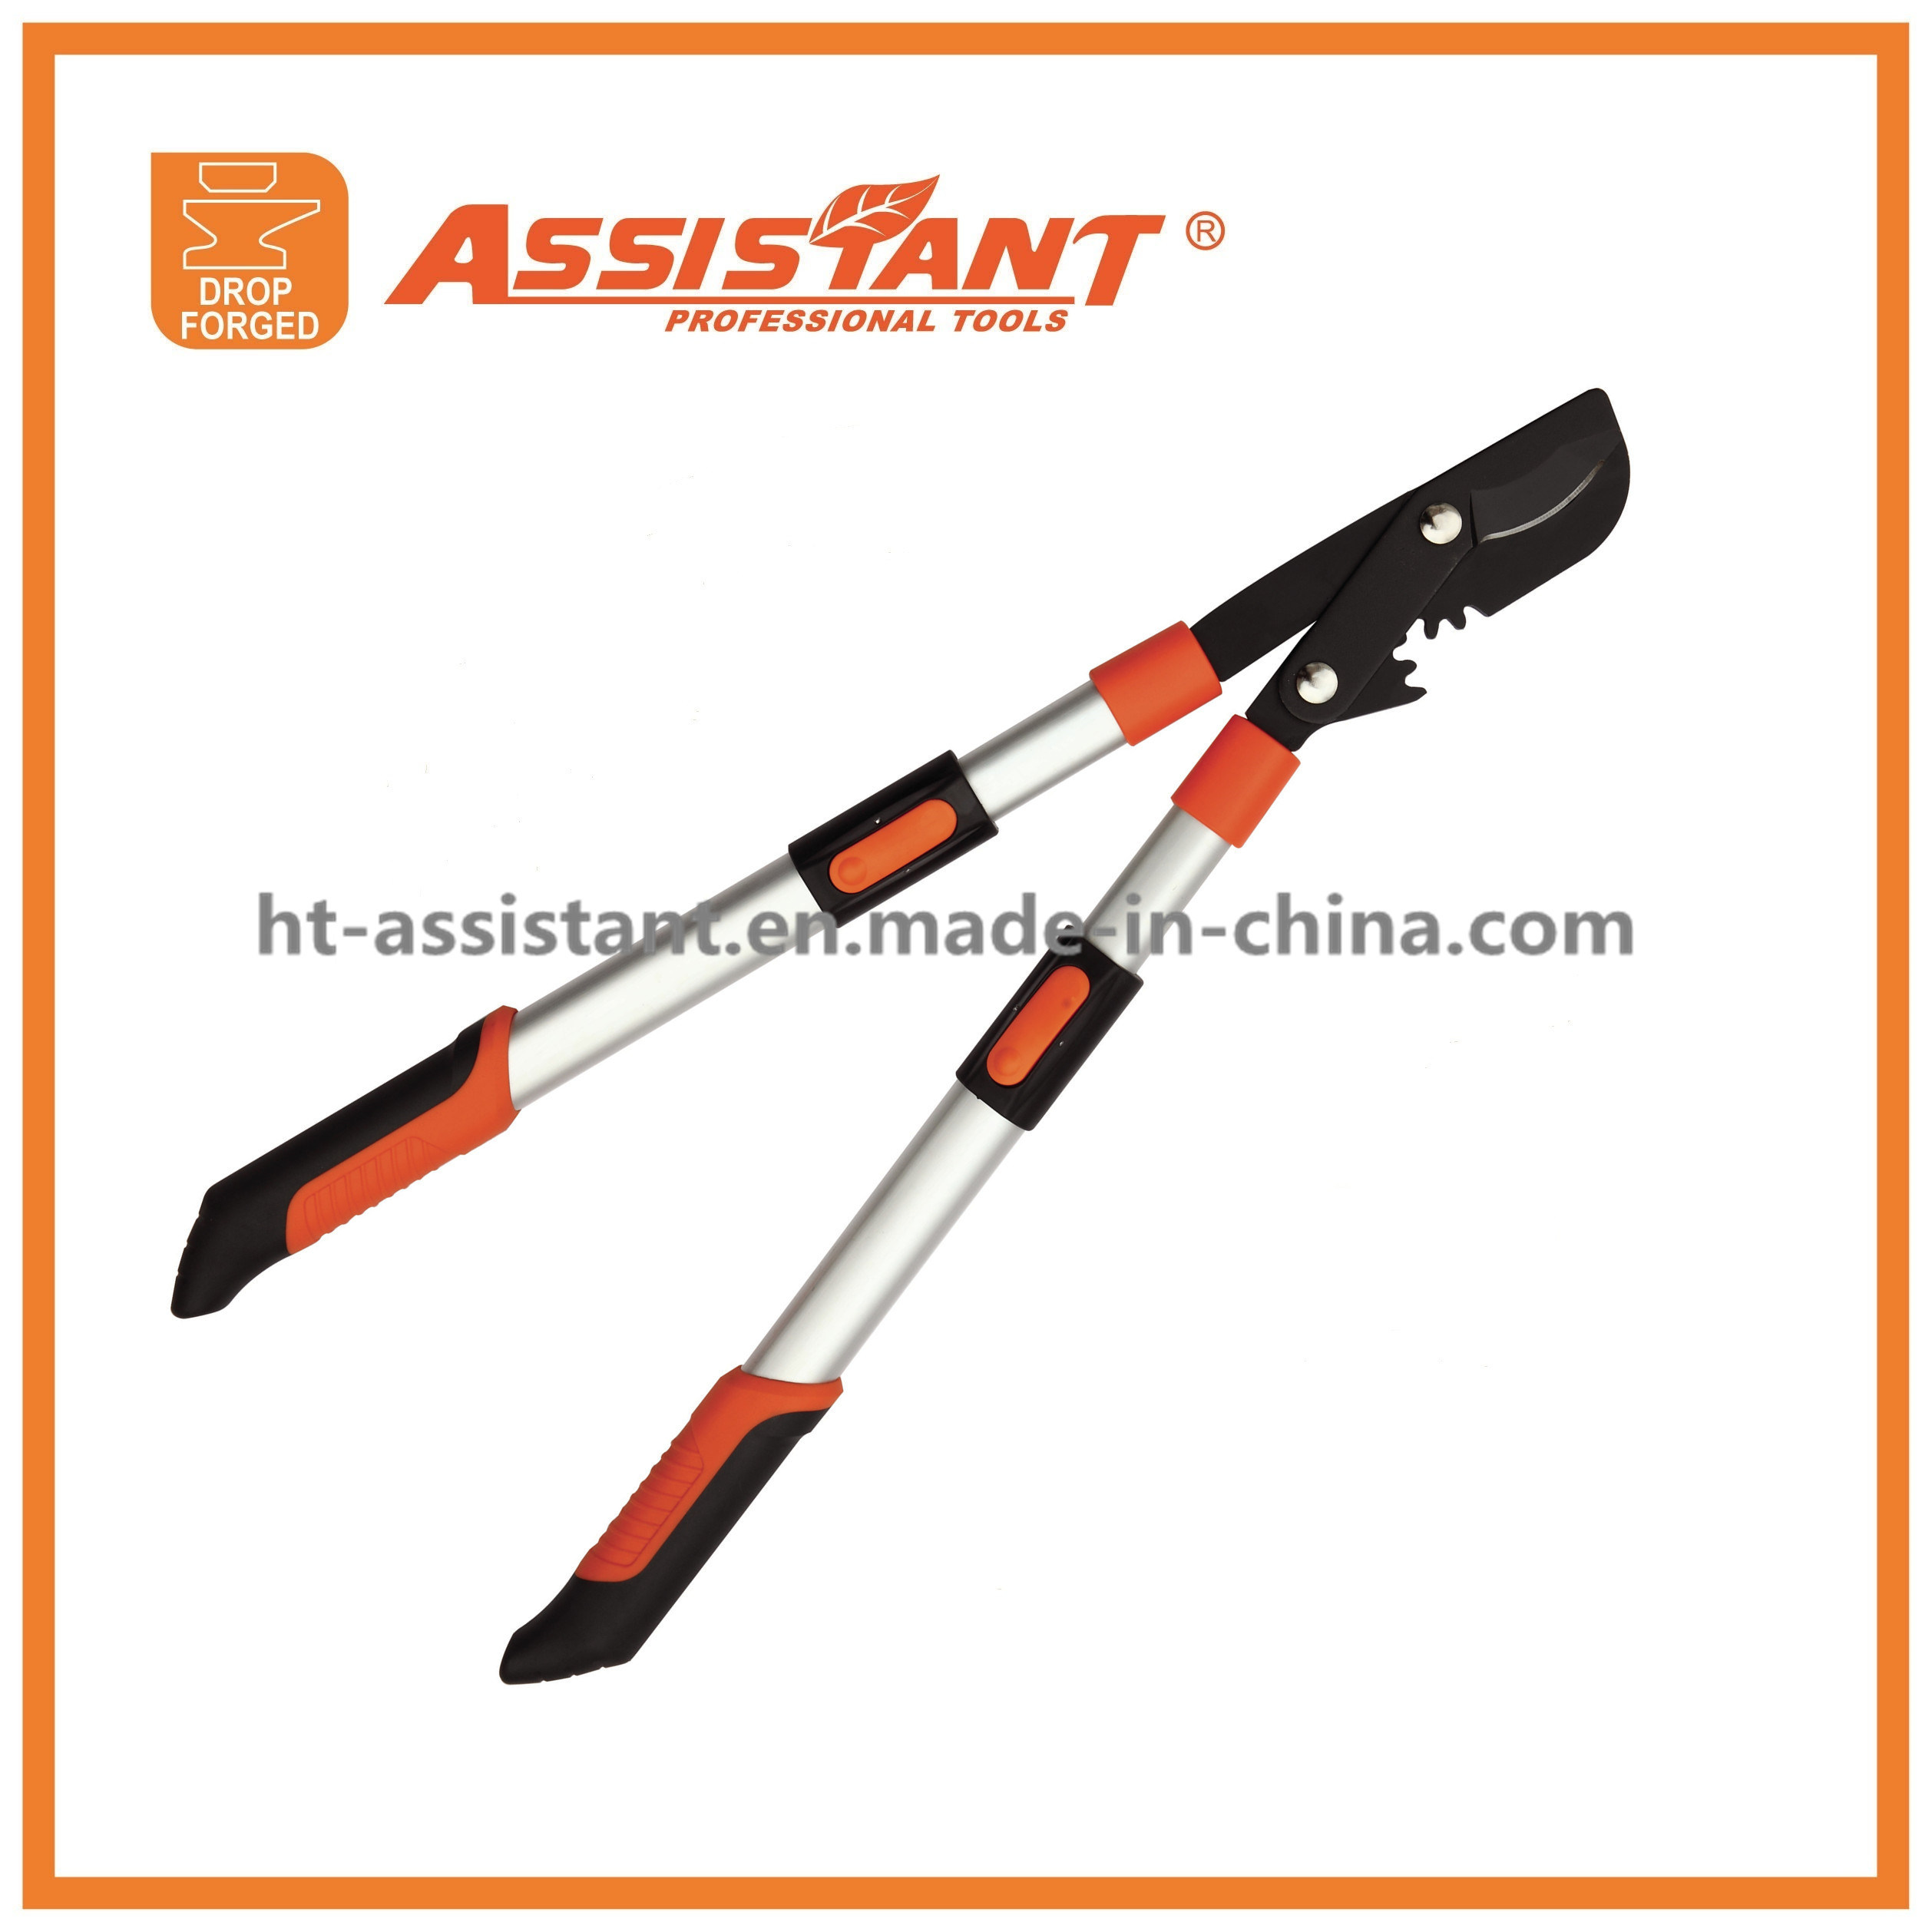 Telescopic Aluminum Handles Teflon Coated Drop Forged Bypass Pruning Lopper